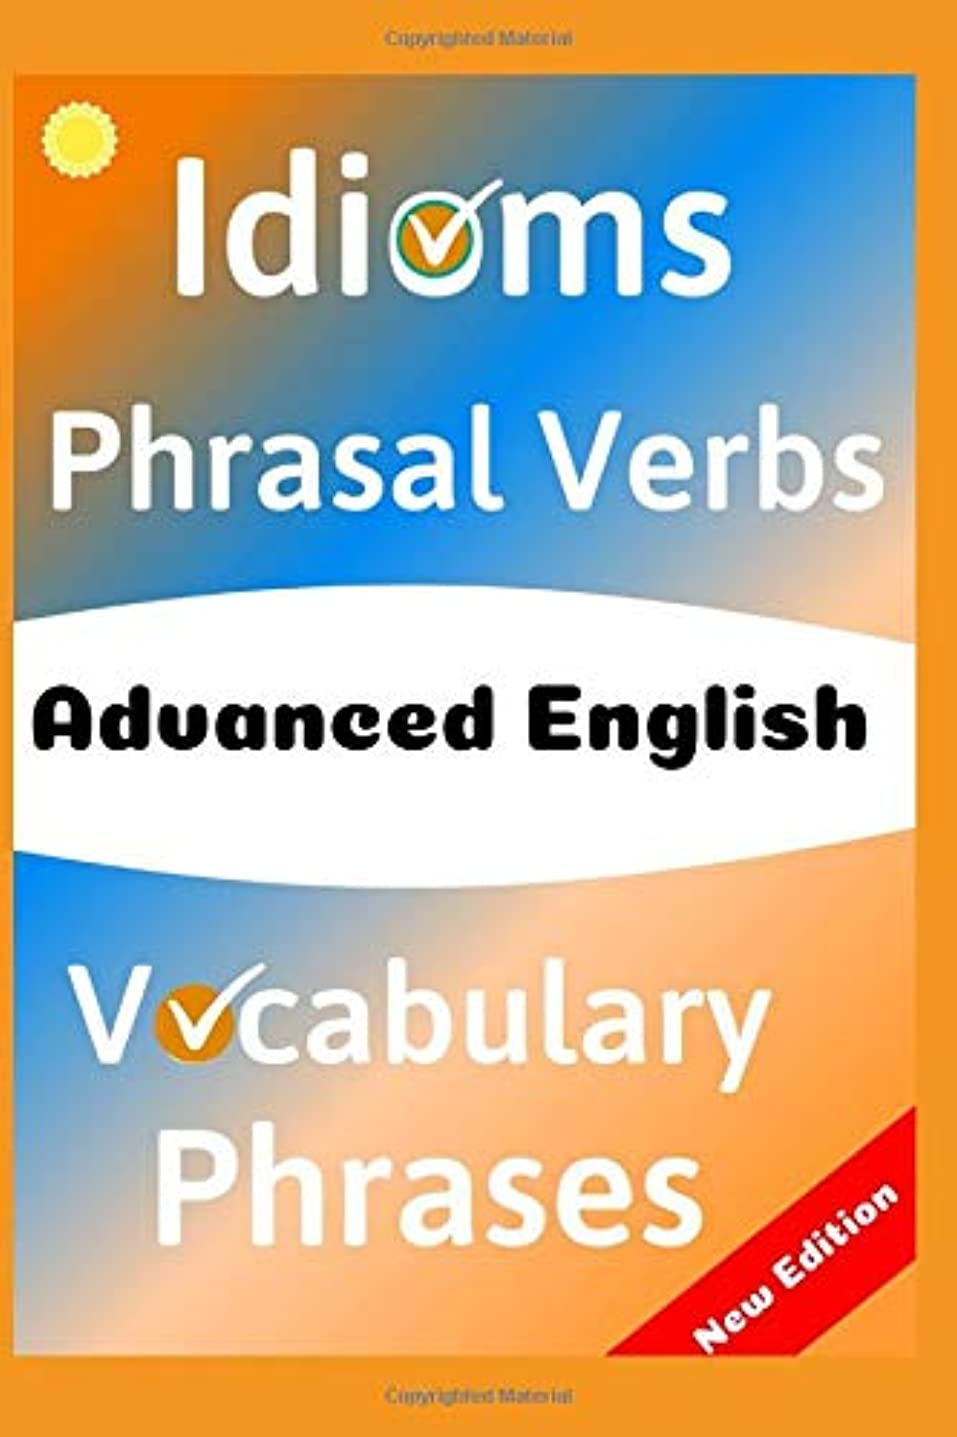 果てしない魚感じるADVANCED ENGLISH: Idioms, Phrasal Verbs, Vocabulary and Phrases: 700 Expressions of Academic Language (The ultimate Guide Book)